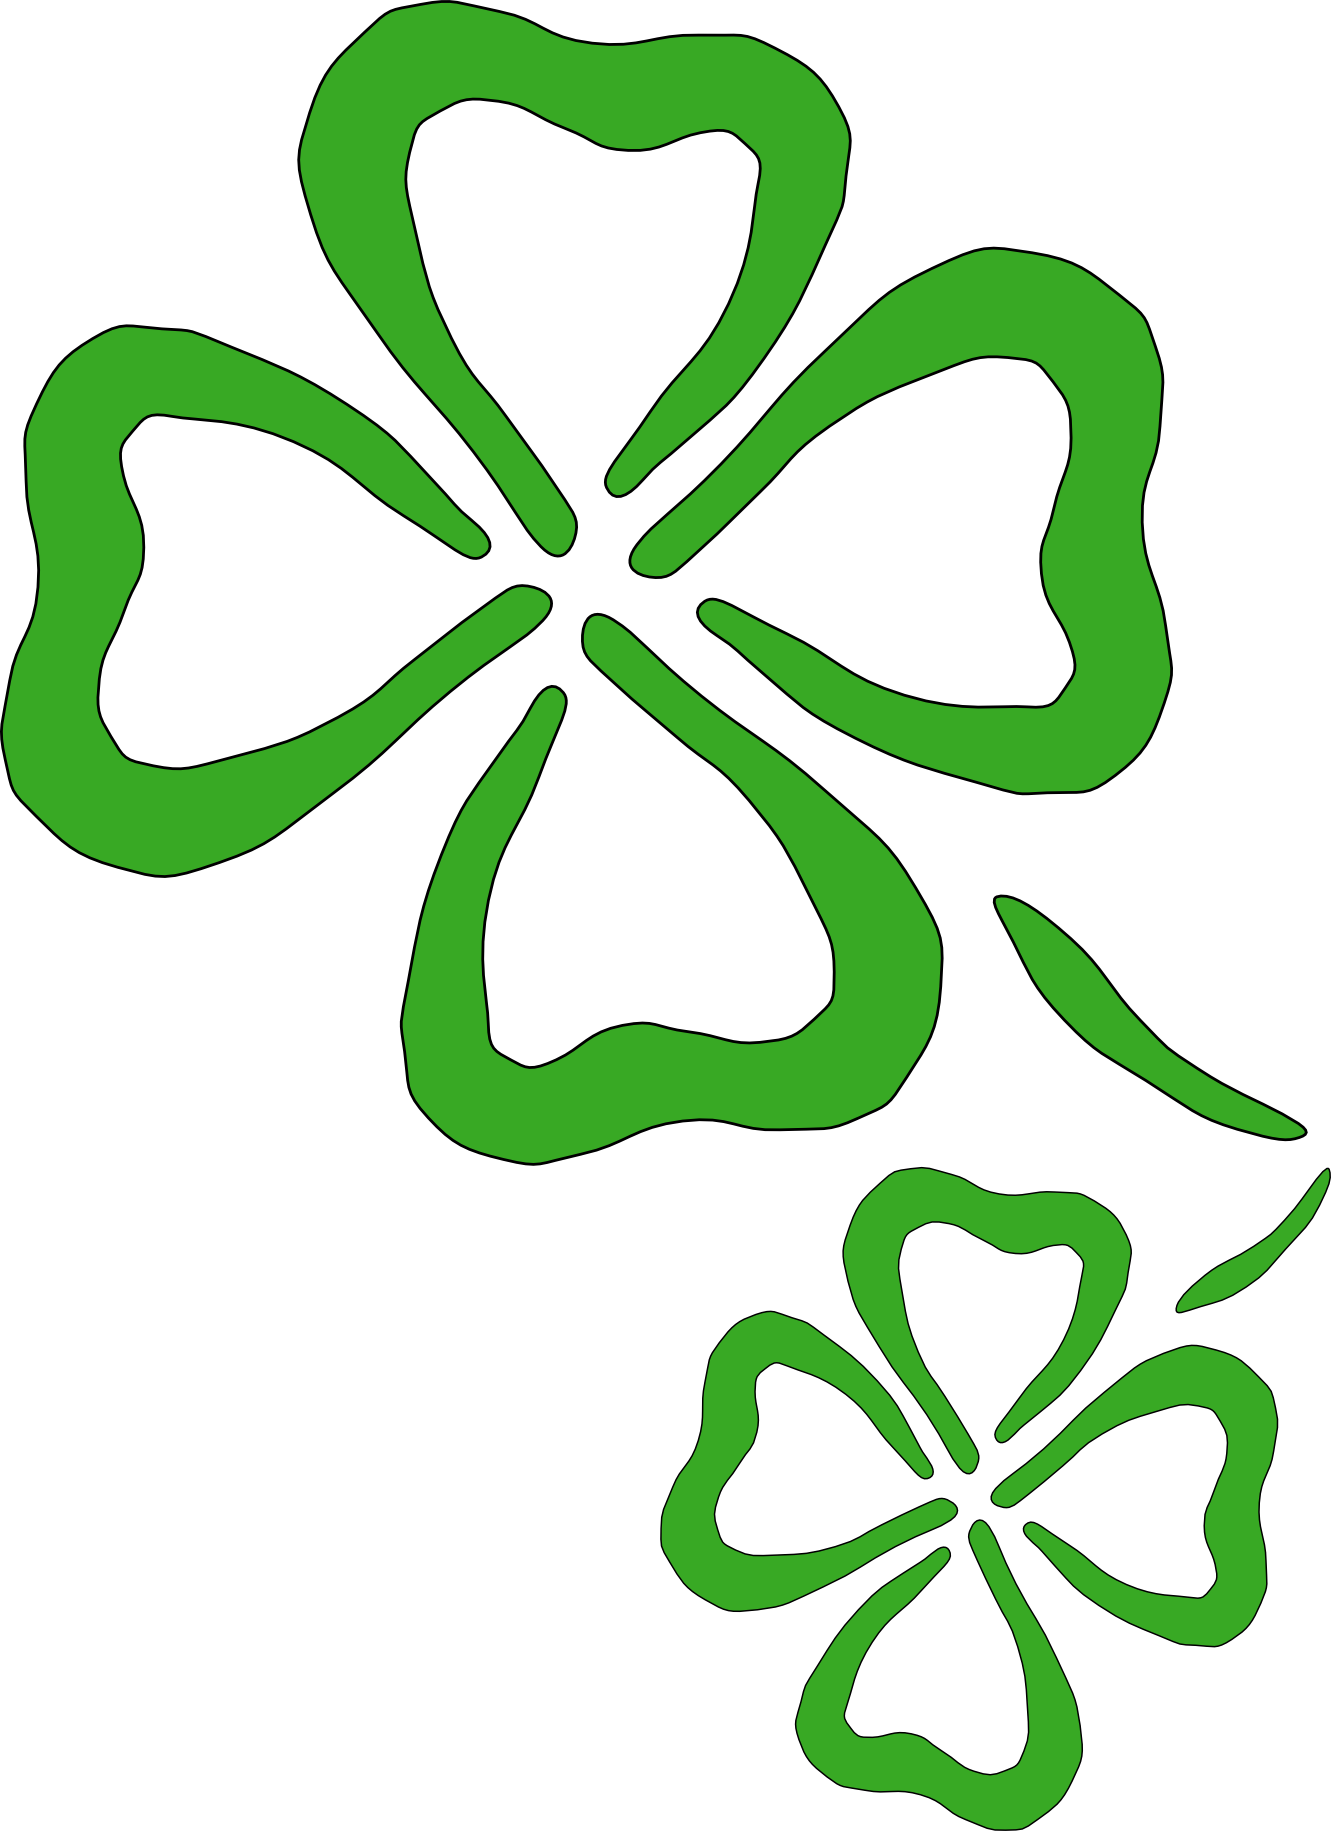 clipart shamrock clipart best clipart best infant room rh pinterest com 4 leaf clover clipart free 4 leaf clover clipart